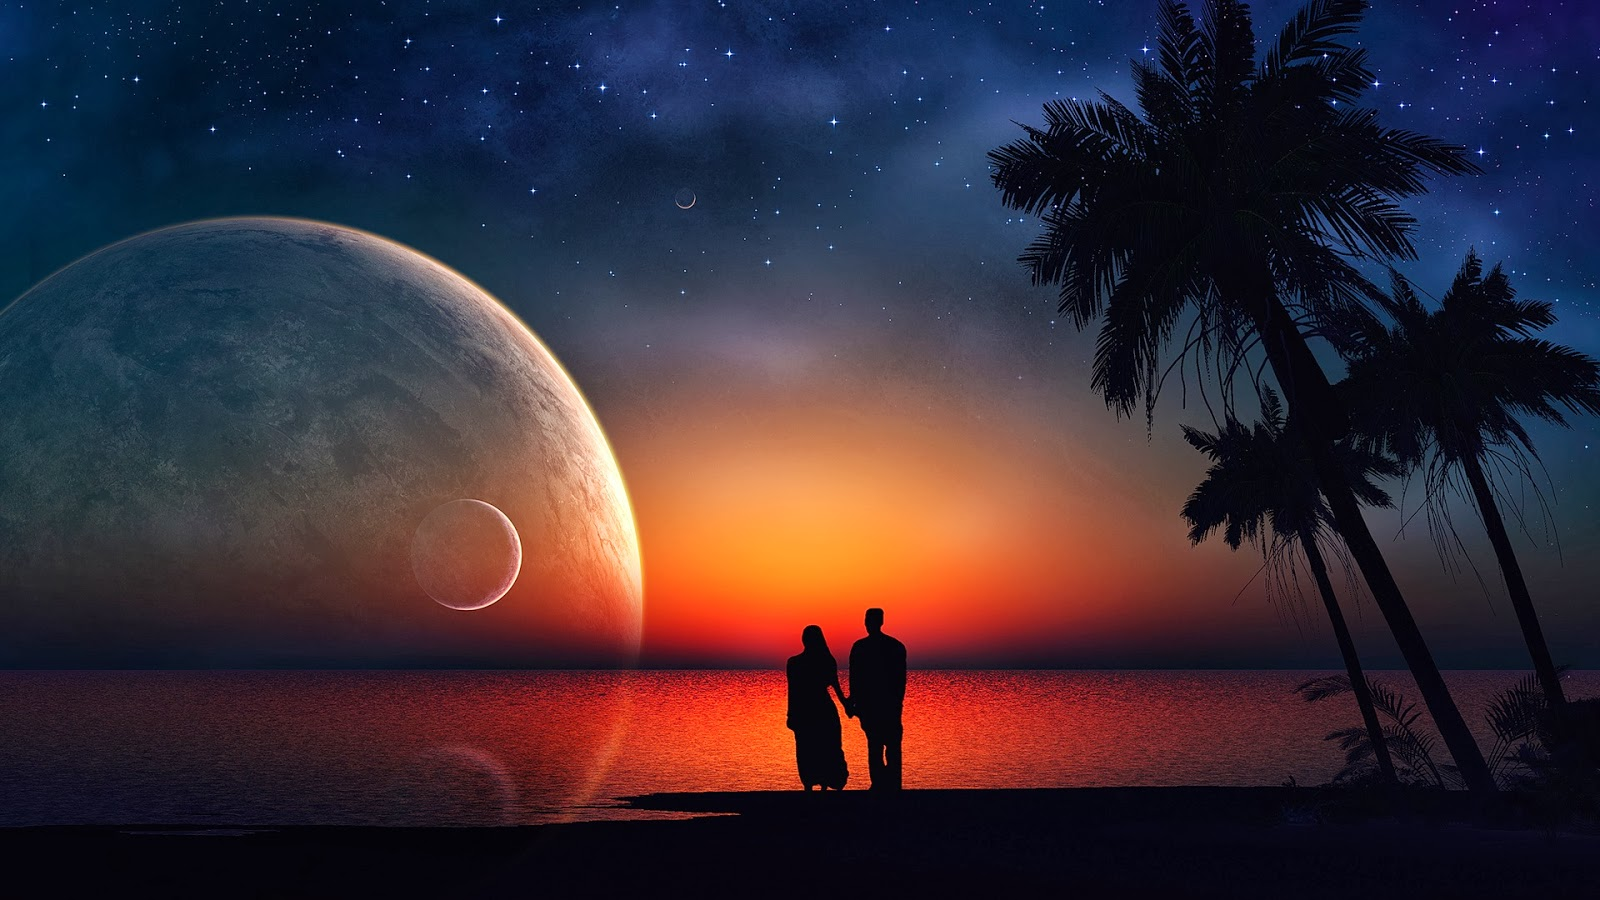 Love Wallpaper In Romantic : Romantic Love Pictures for her - Hug and Kiss, couples Dance in Moonlight Wallpaper, Images, Photos